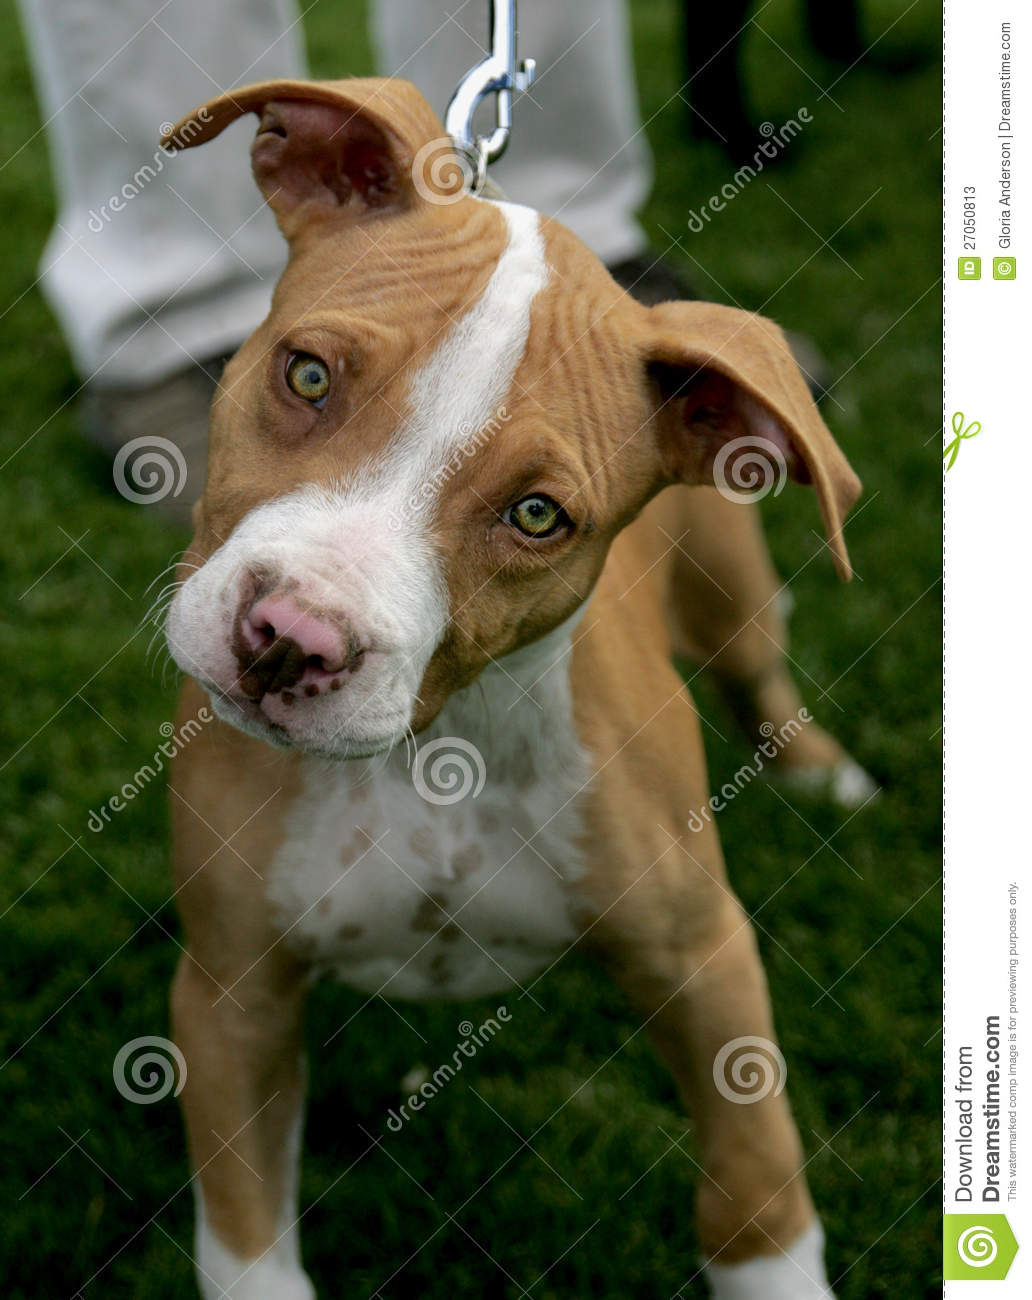 Red Nose Pitbull Puppy Stock Image Image Of Gray Play 27050813